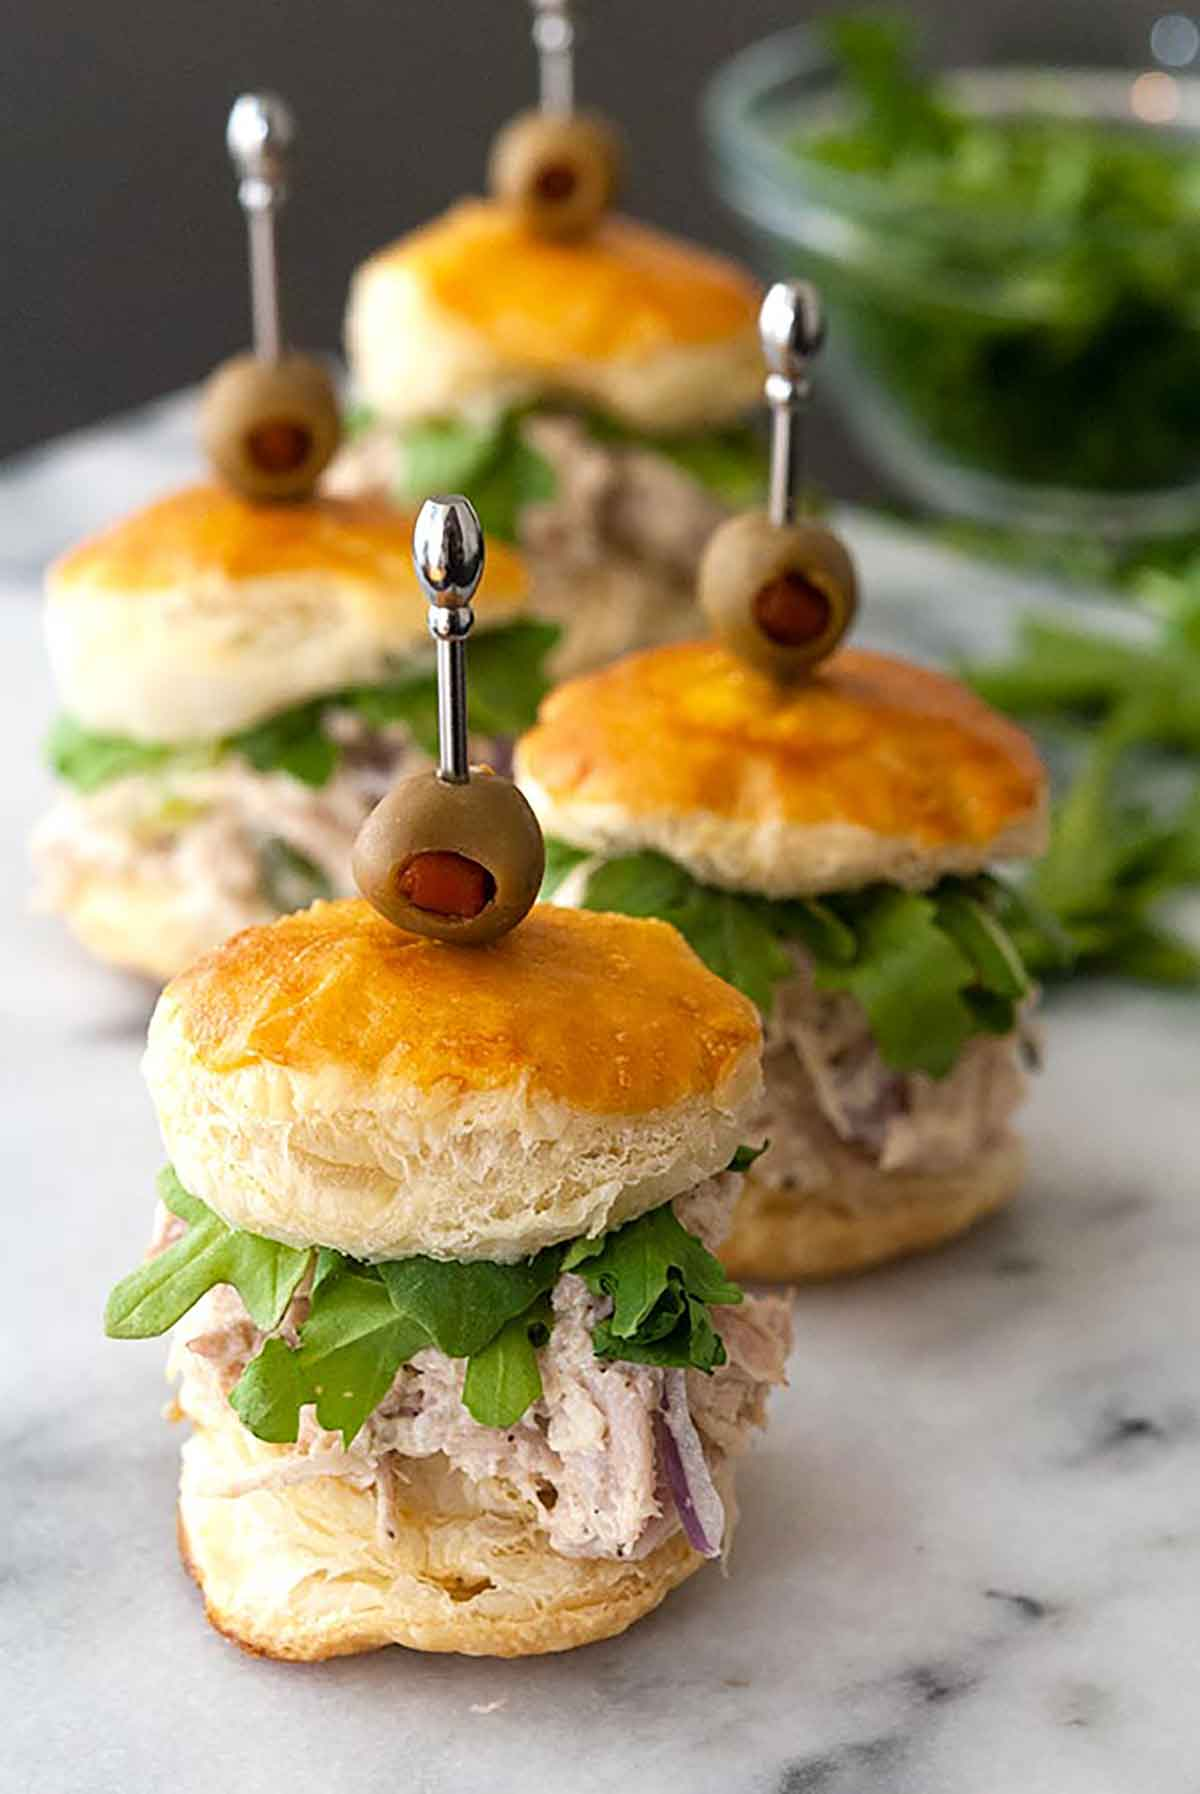 Chicken salad sliders on a marble board surrounded by arugula.